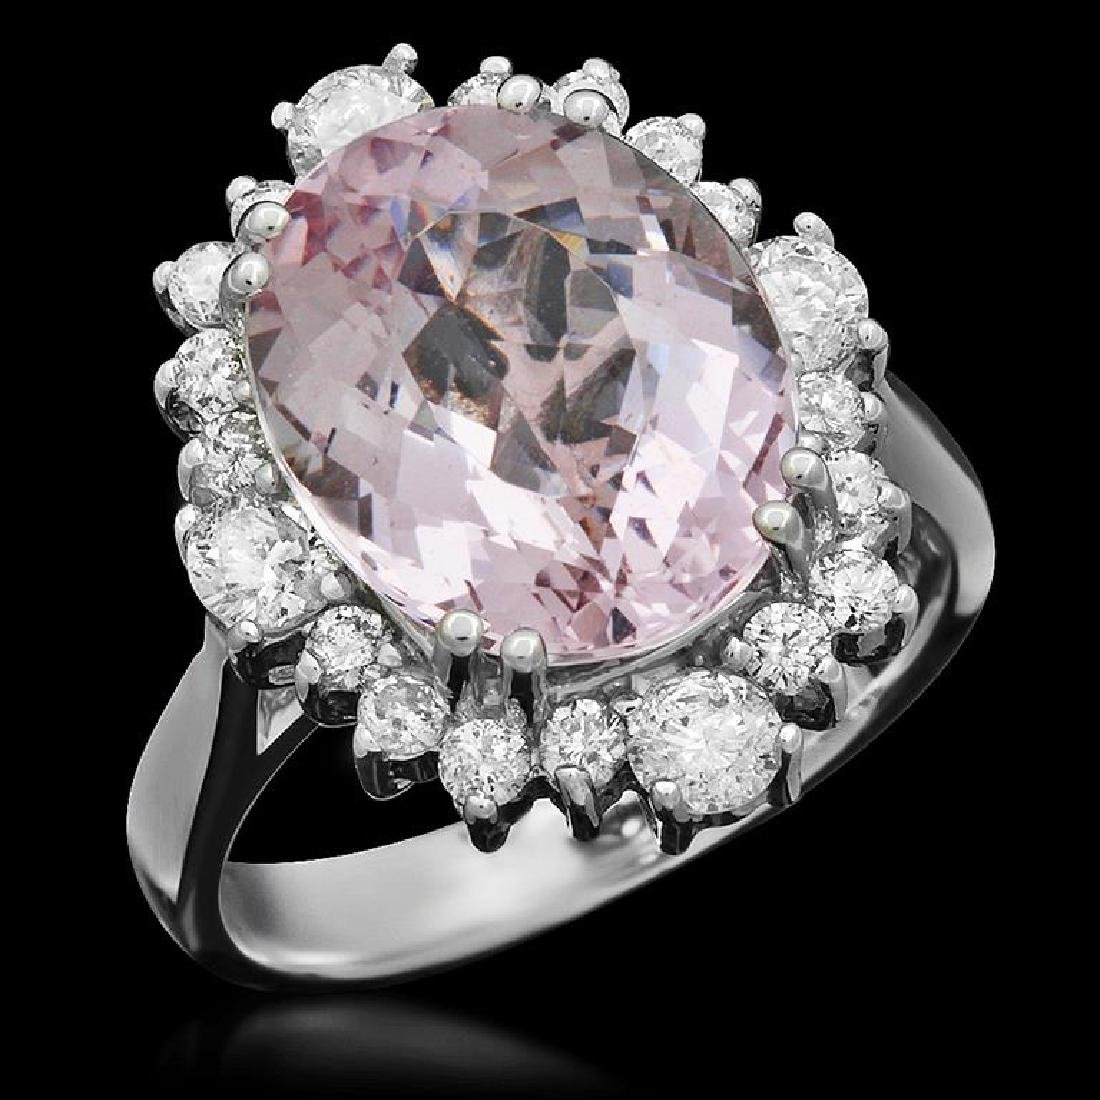 14k Gold 5.21ct Morganite 1.10ct Diamond Ring